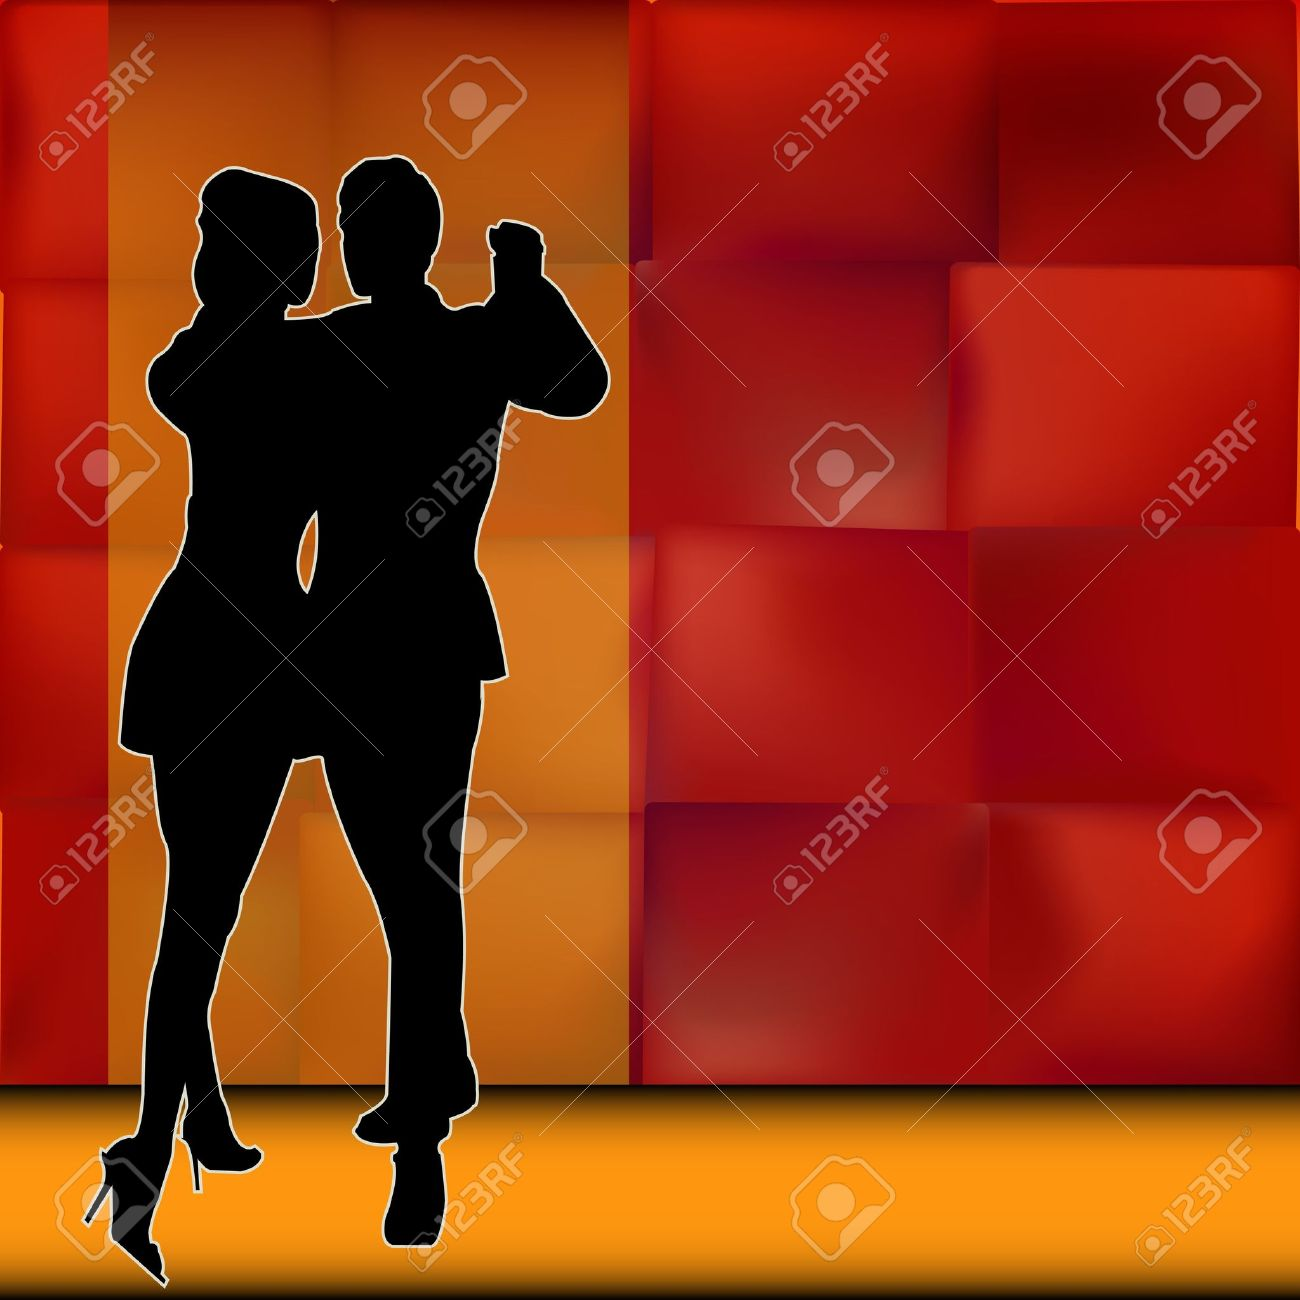 Rumba, Background illustration with a couple of dancers carrying out a Latin American Ballroom Dance Stock Vector - 19603055